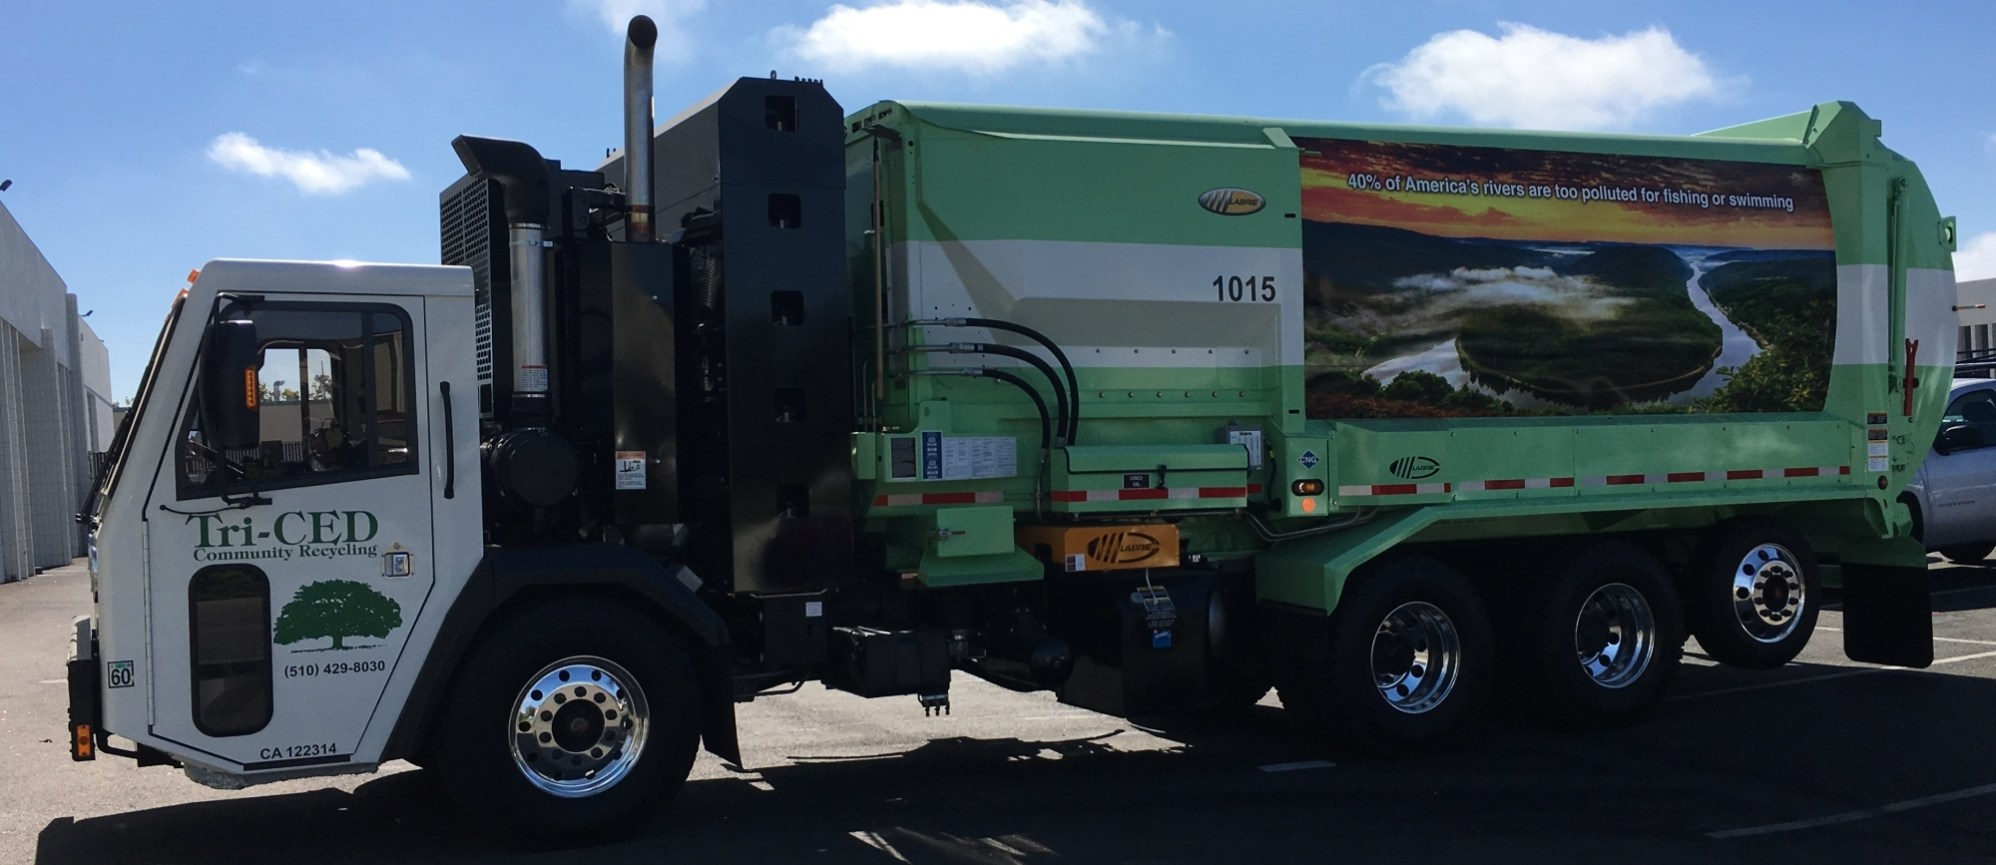 tri-ced-recycling-fleet-wraps-15